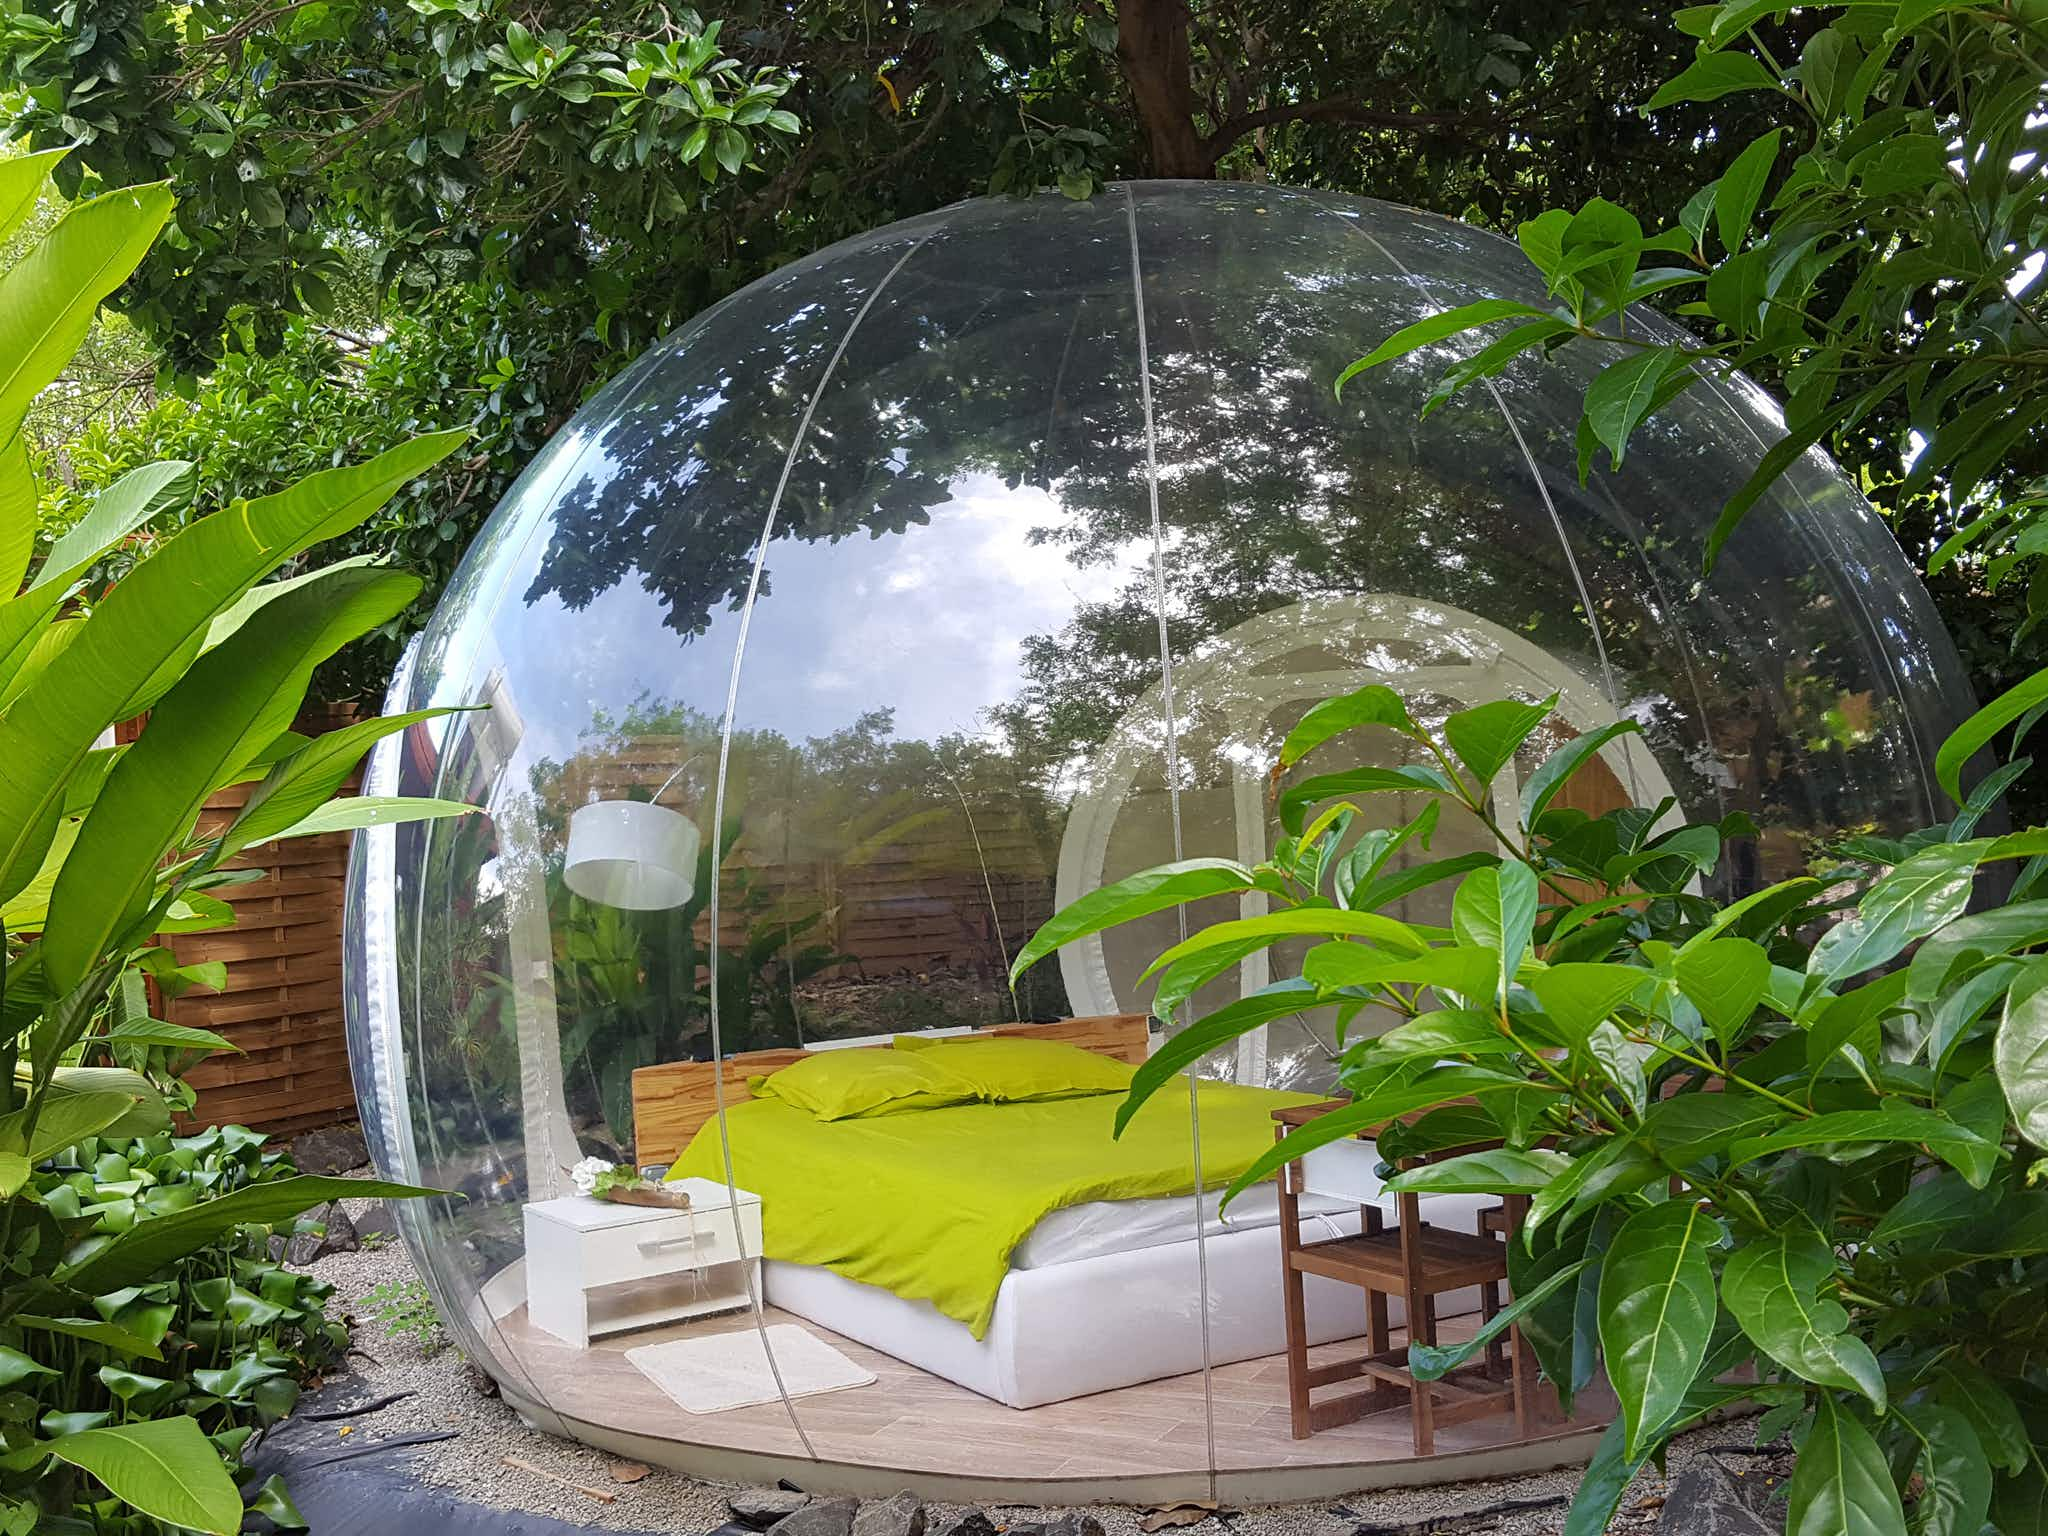 Stay in transparent bubbles on a lush Caribbean island